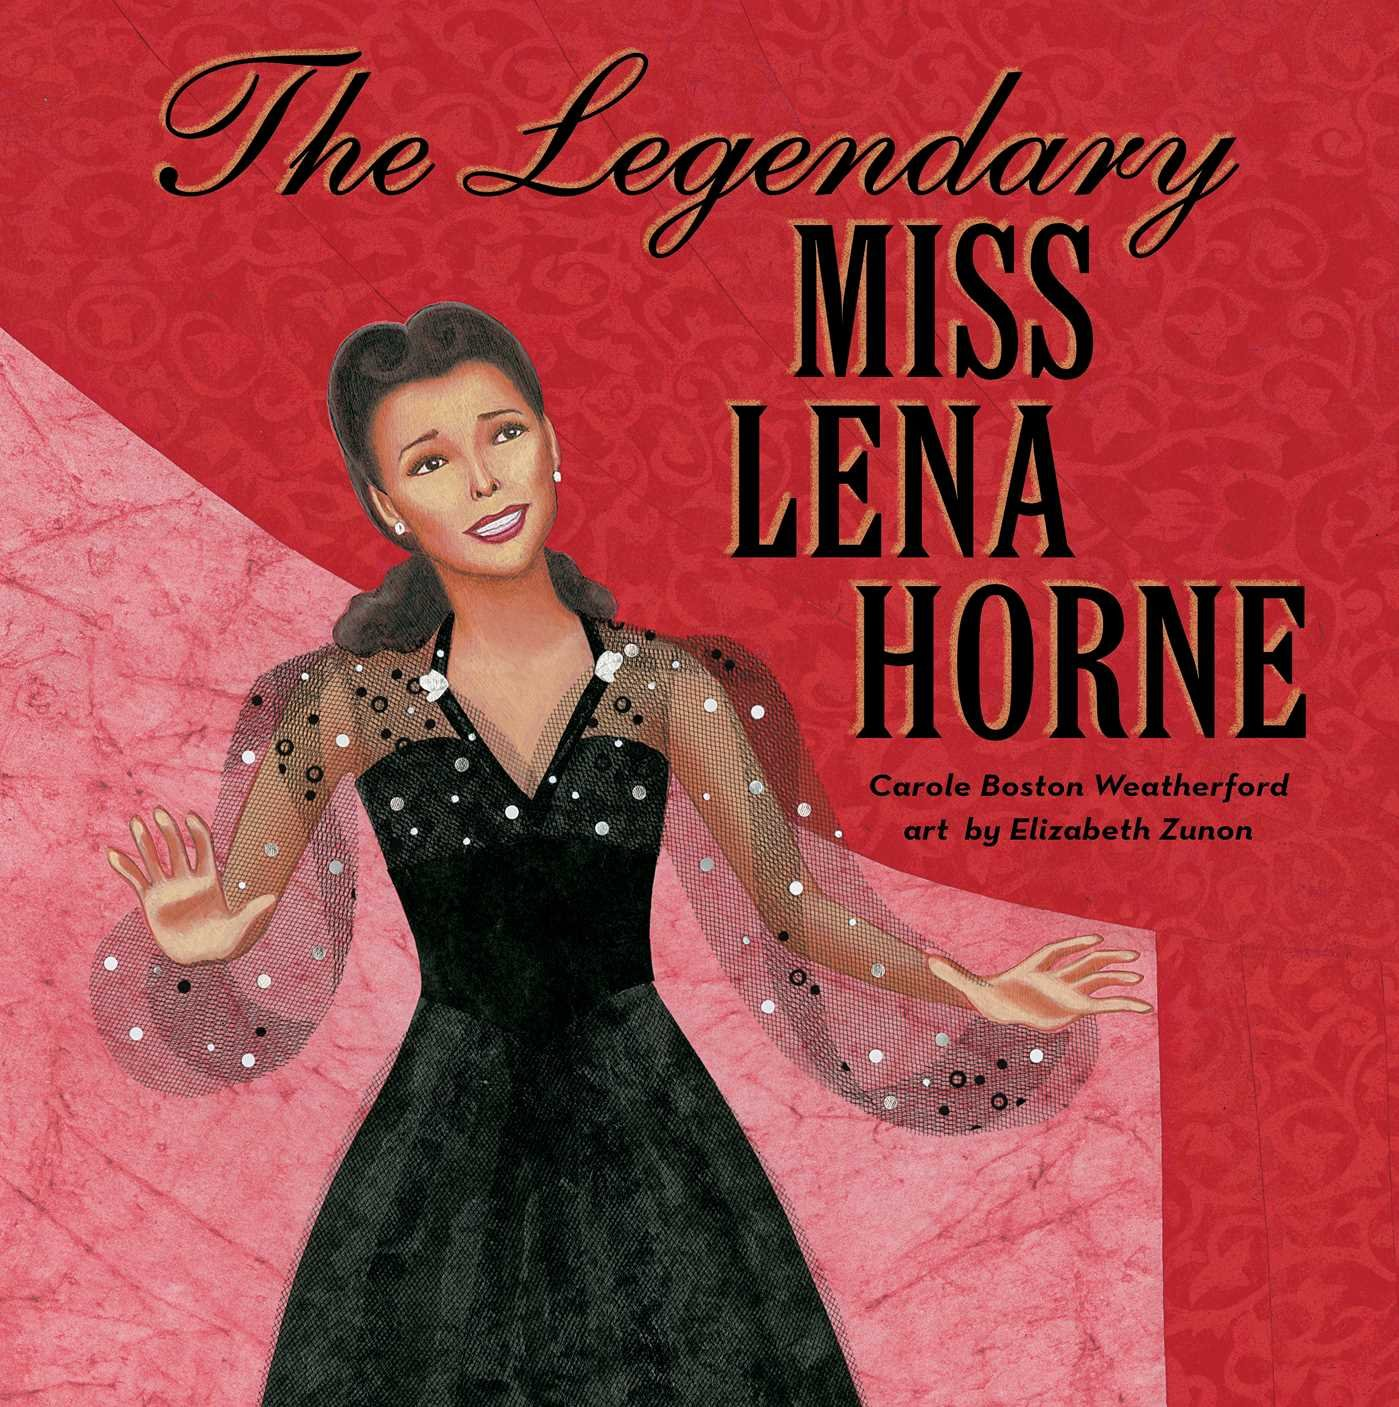 The Legendary Miss Lena Horne